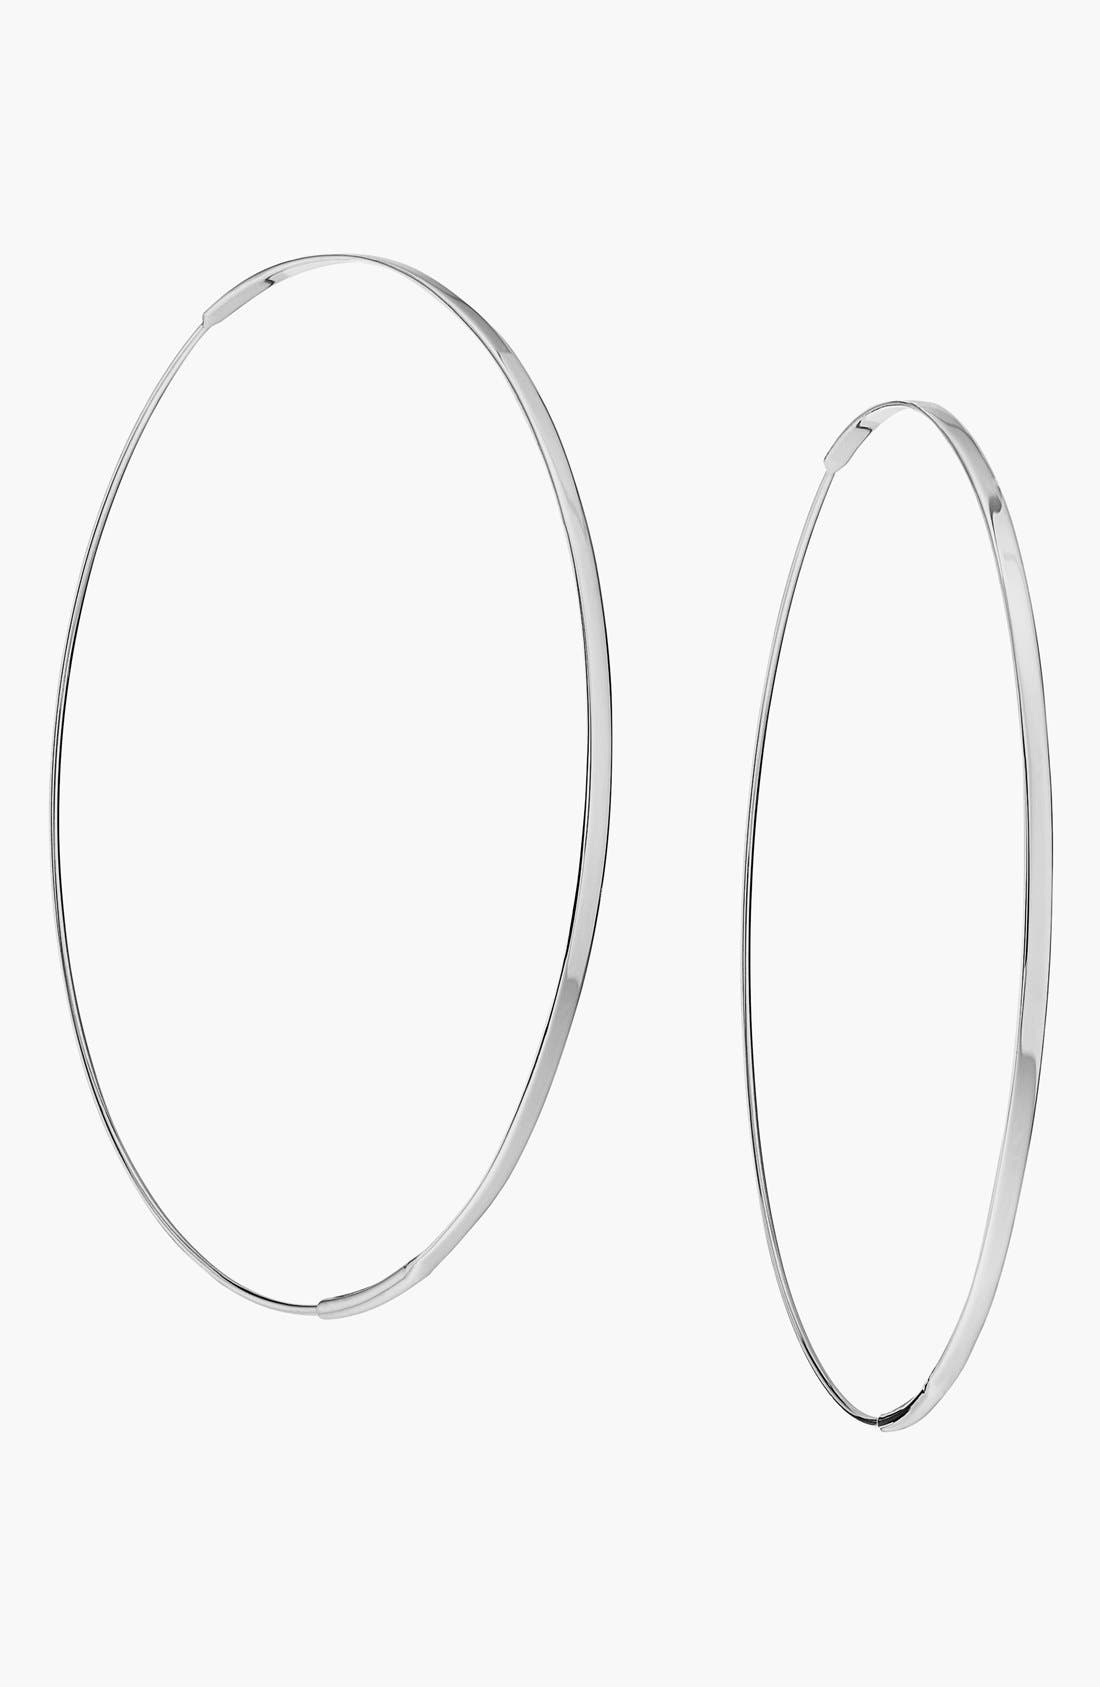 Lana Jewelry 'Large Flat Magic' Hoop Earrings